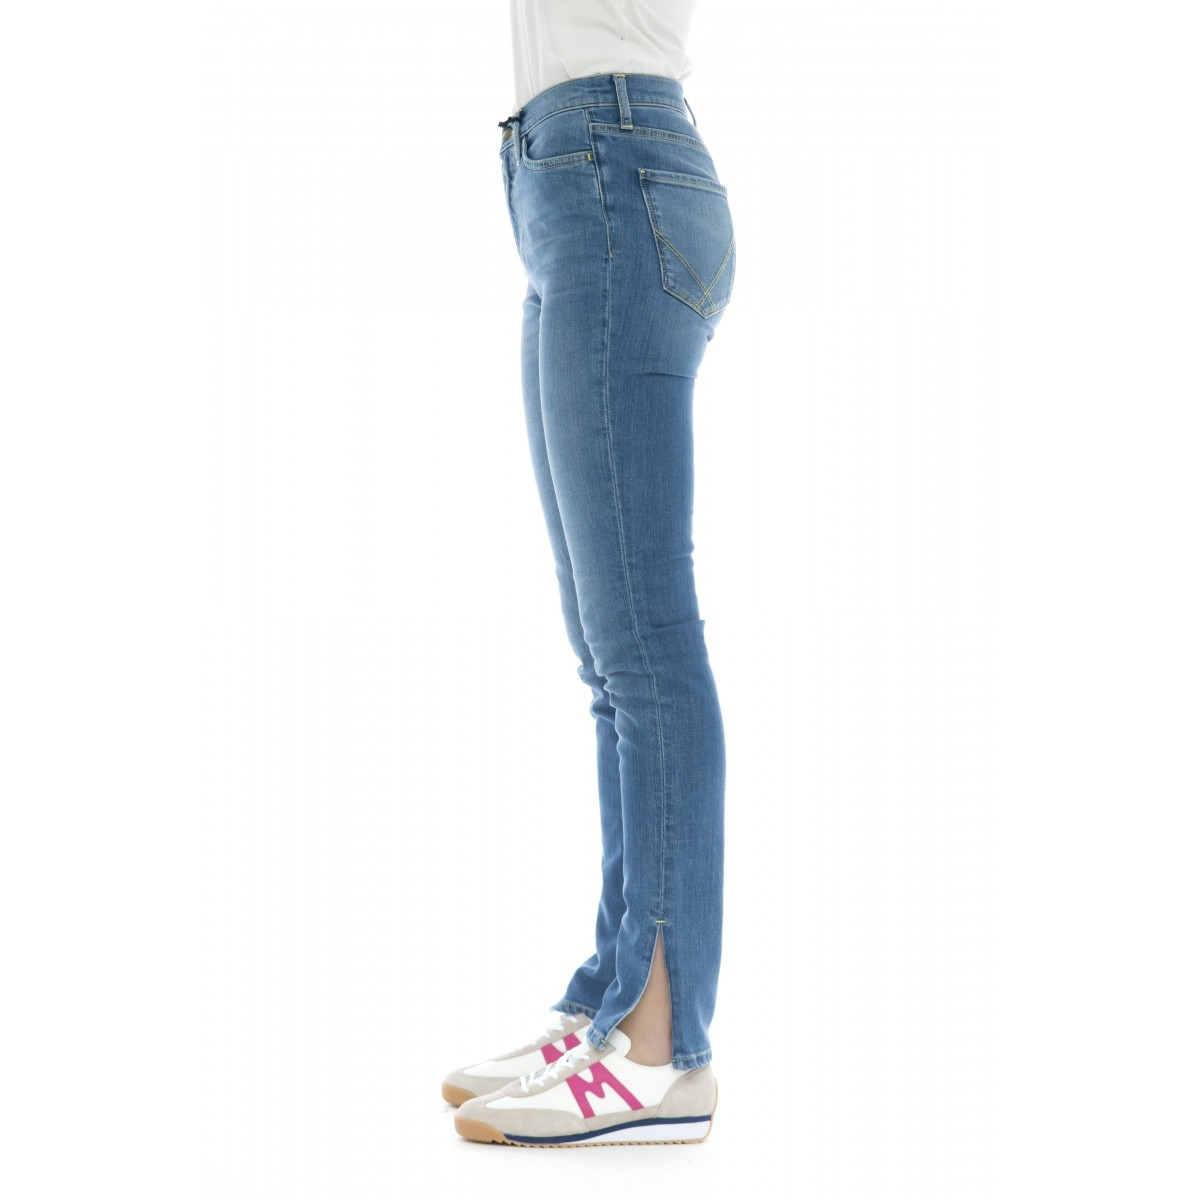 Jeans - High cate zeus